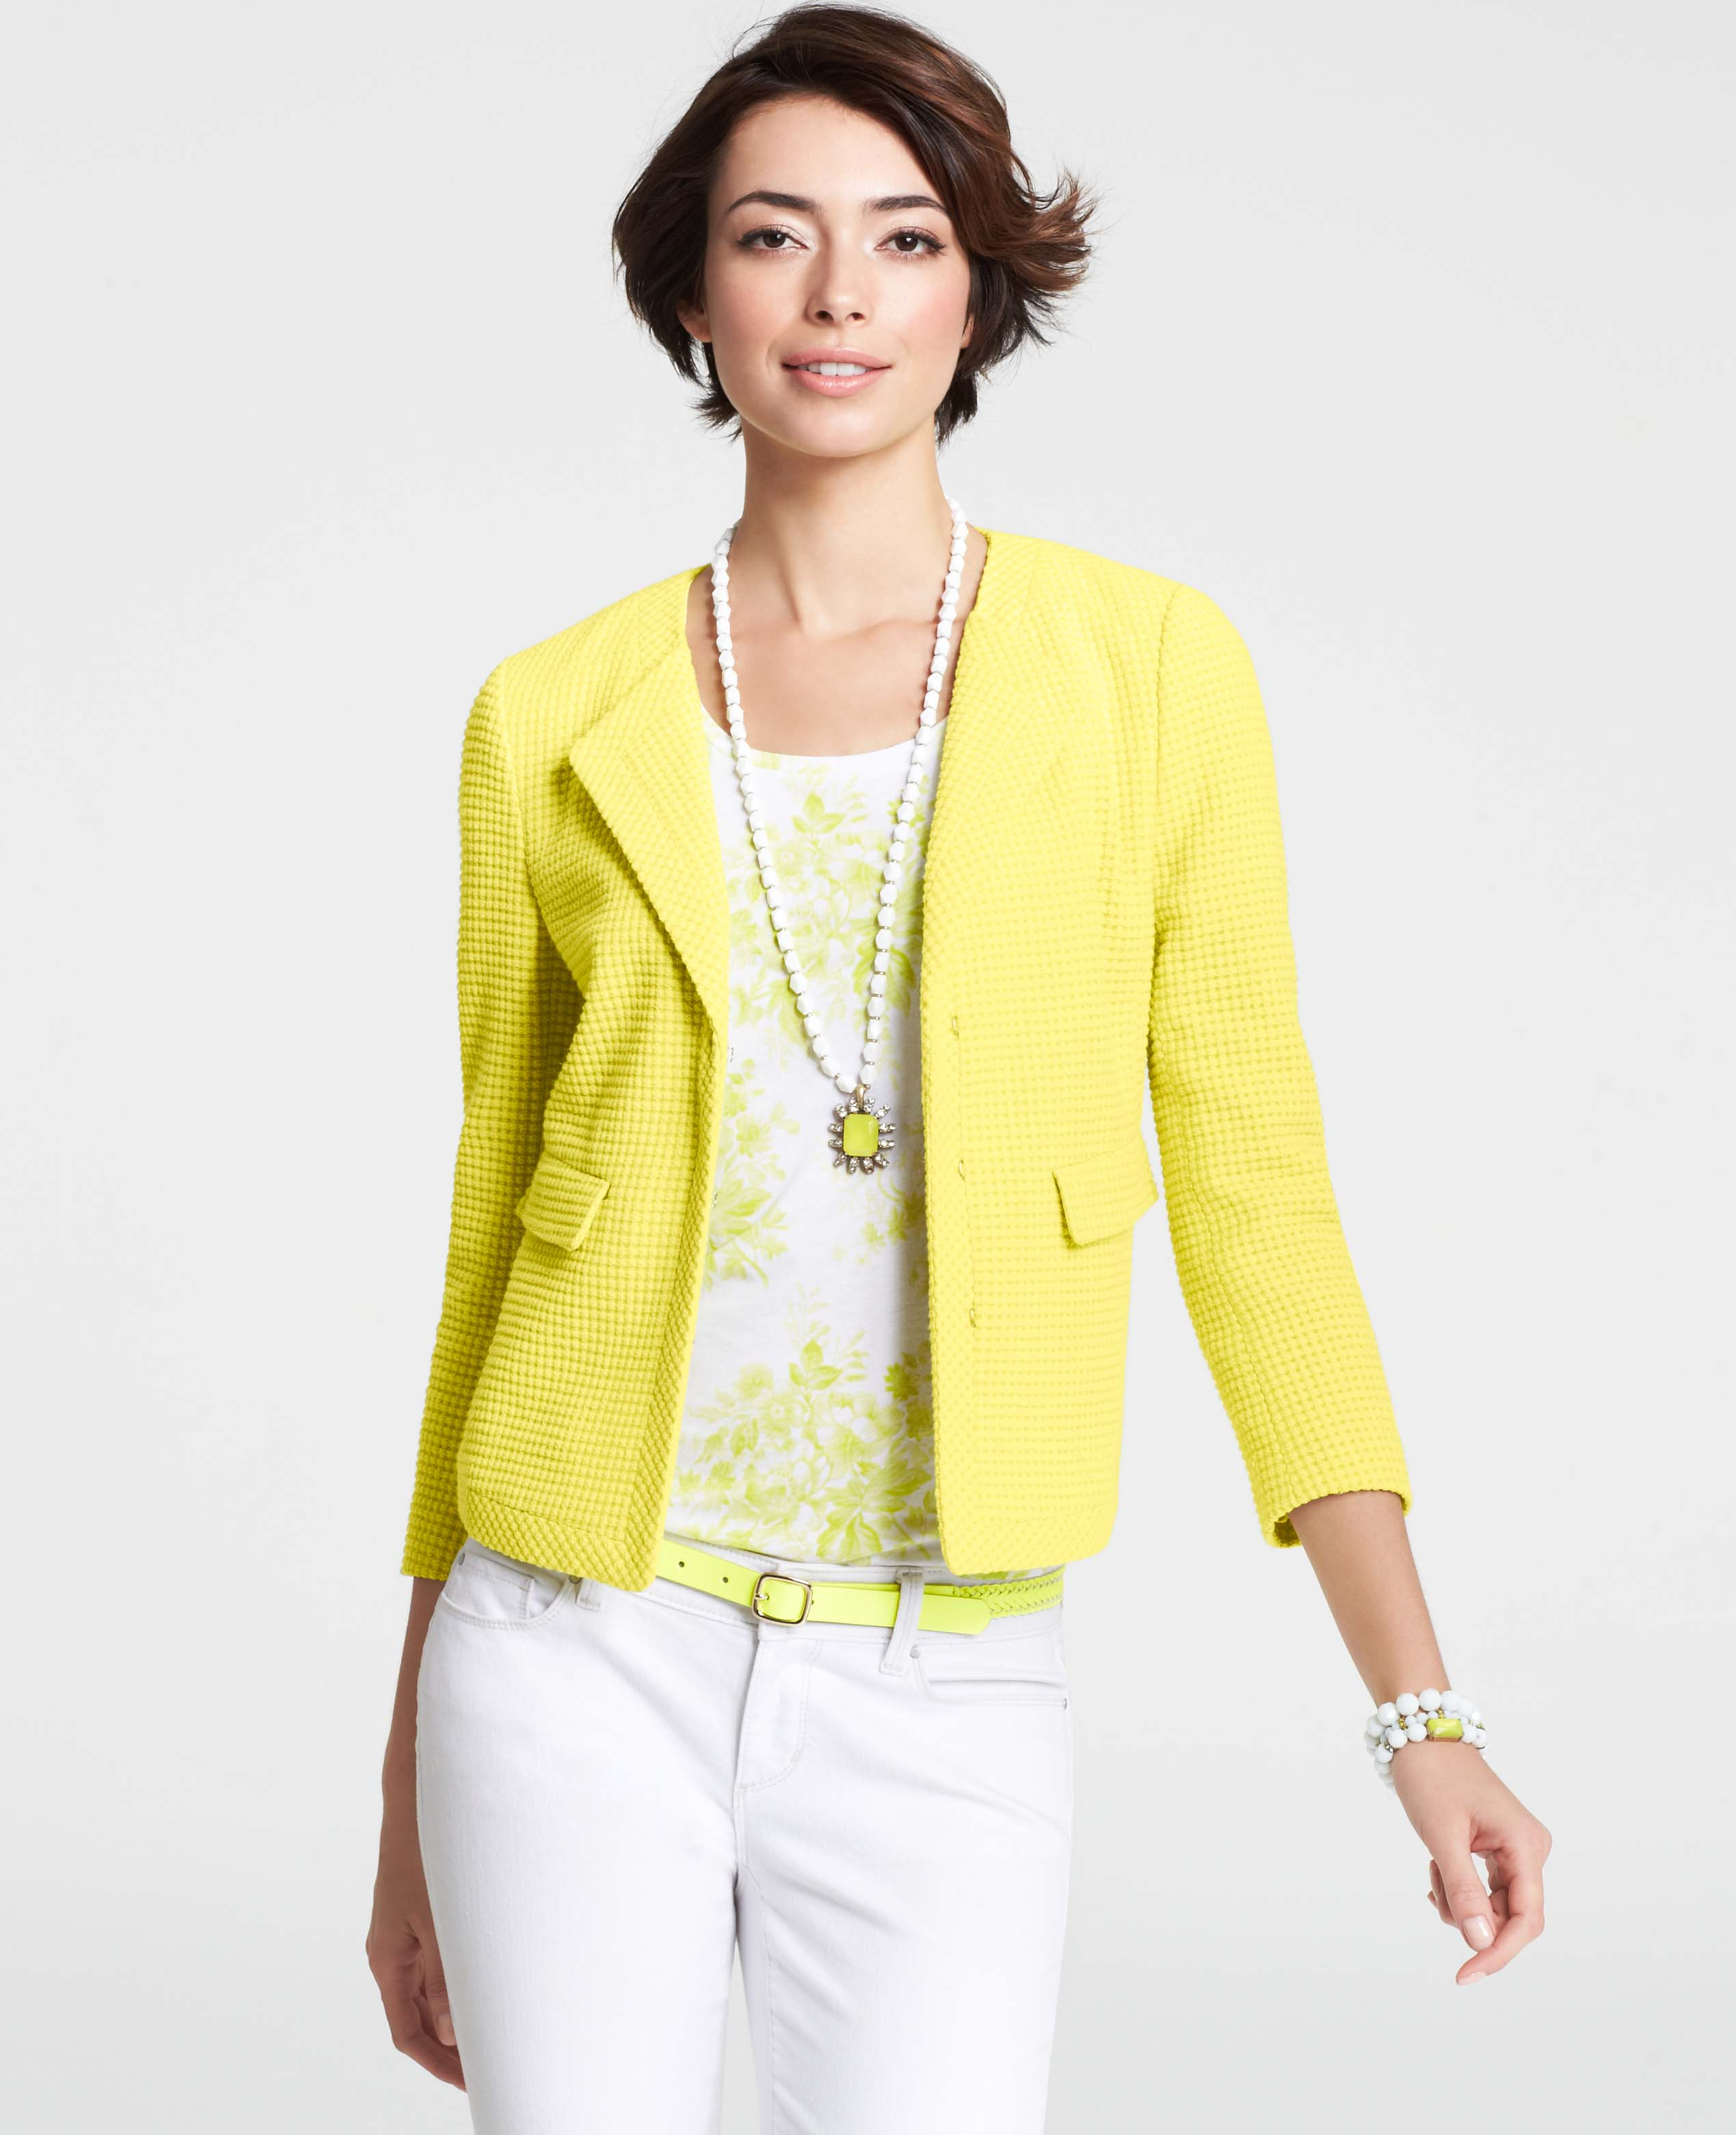 Ann taylor Cotton Boucle Cardigan Jacket in Yellow   Lyst